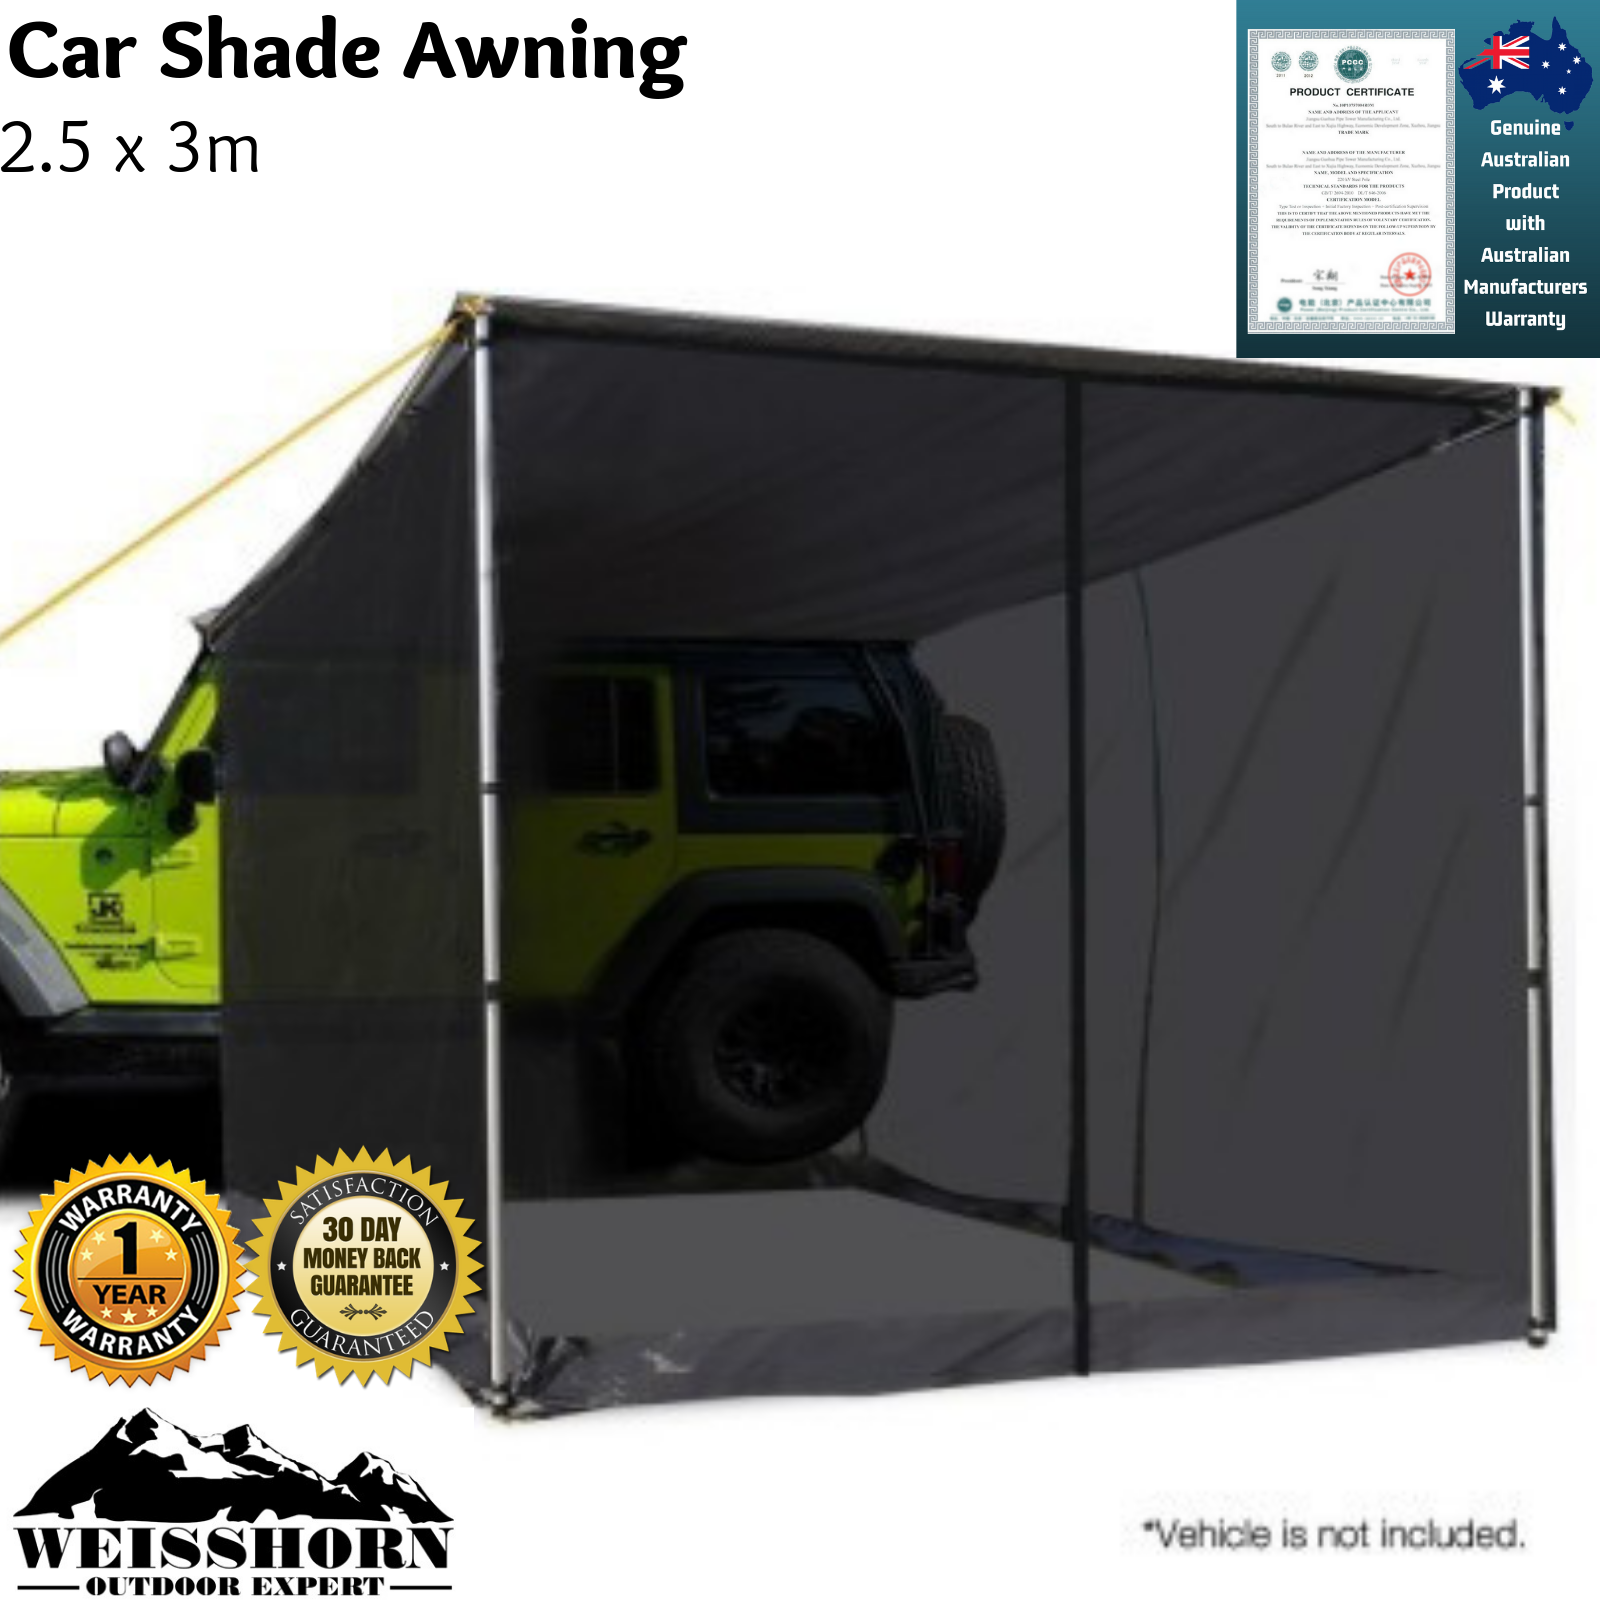 4Wd Awning Tent details about new car 4wd 4x4 roof rack awning vehicle fly mesh screen suv  net tent 2.5 x 3m